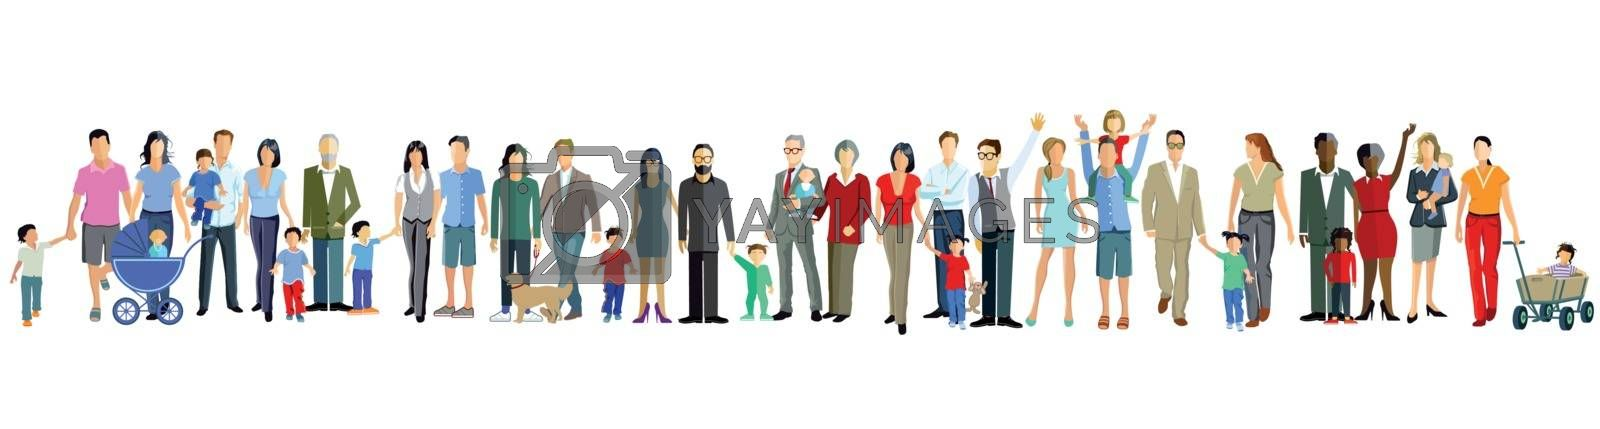 Families and generation are together, illustration